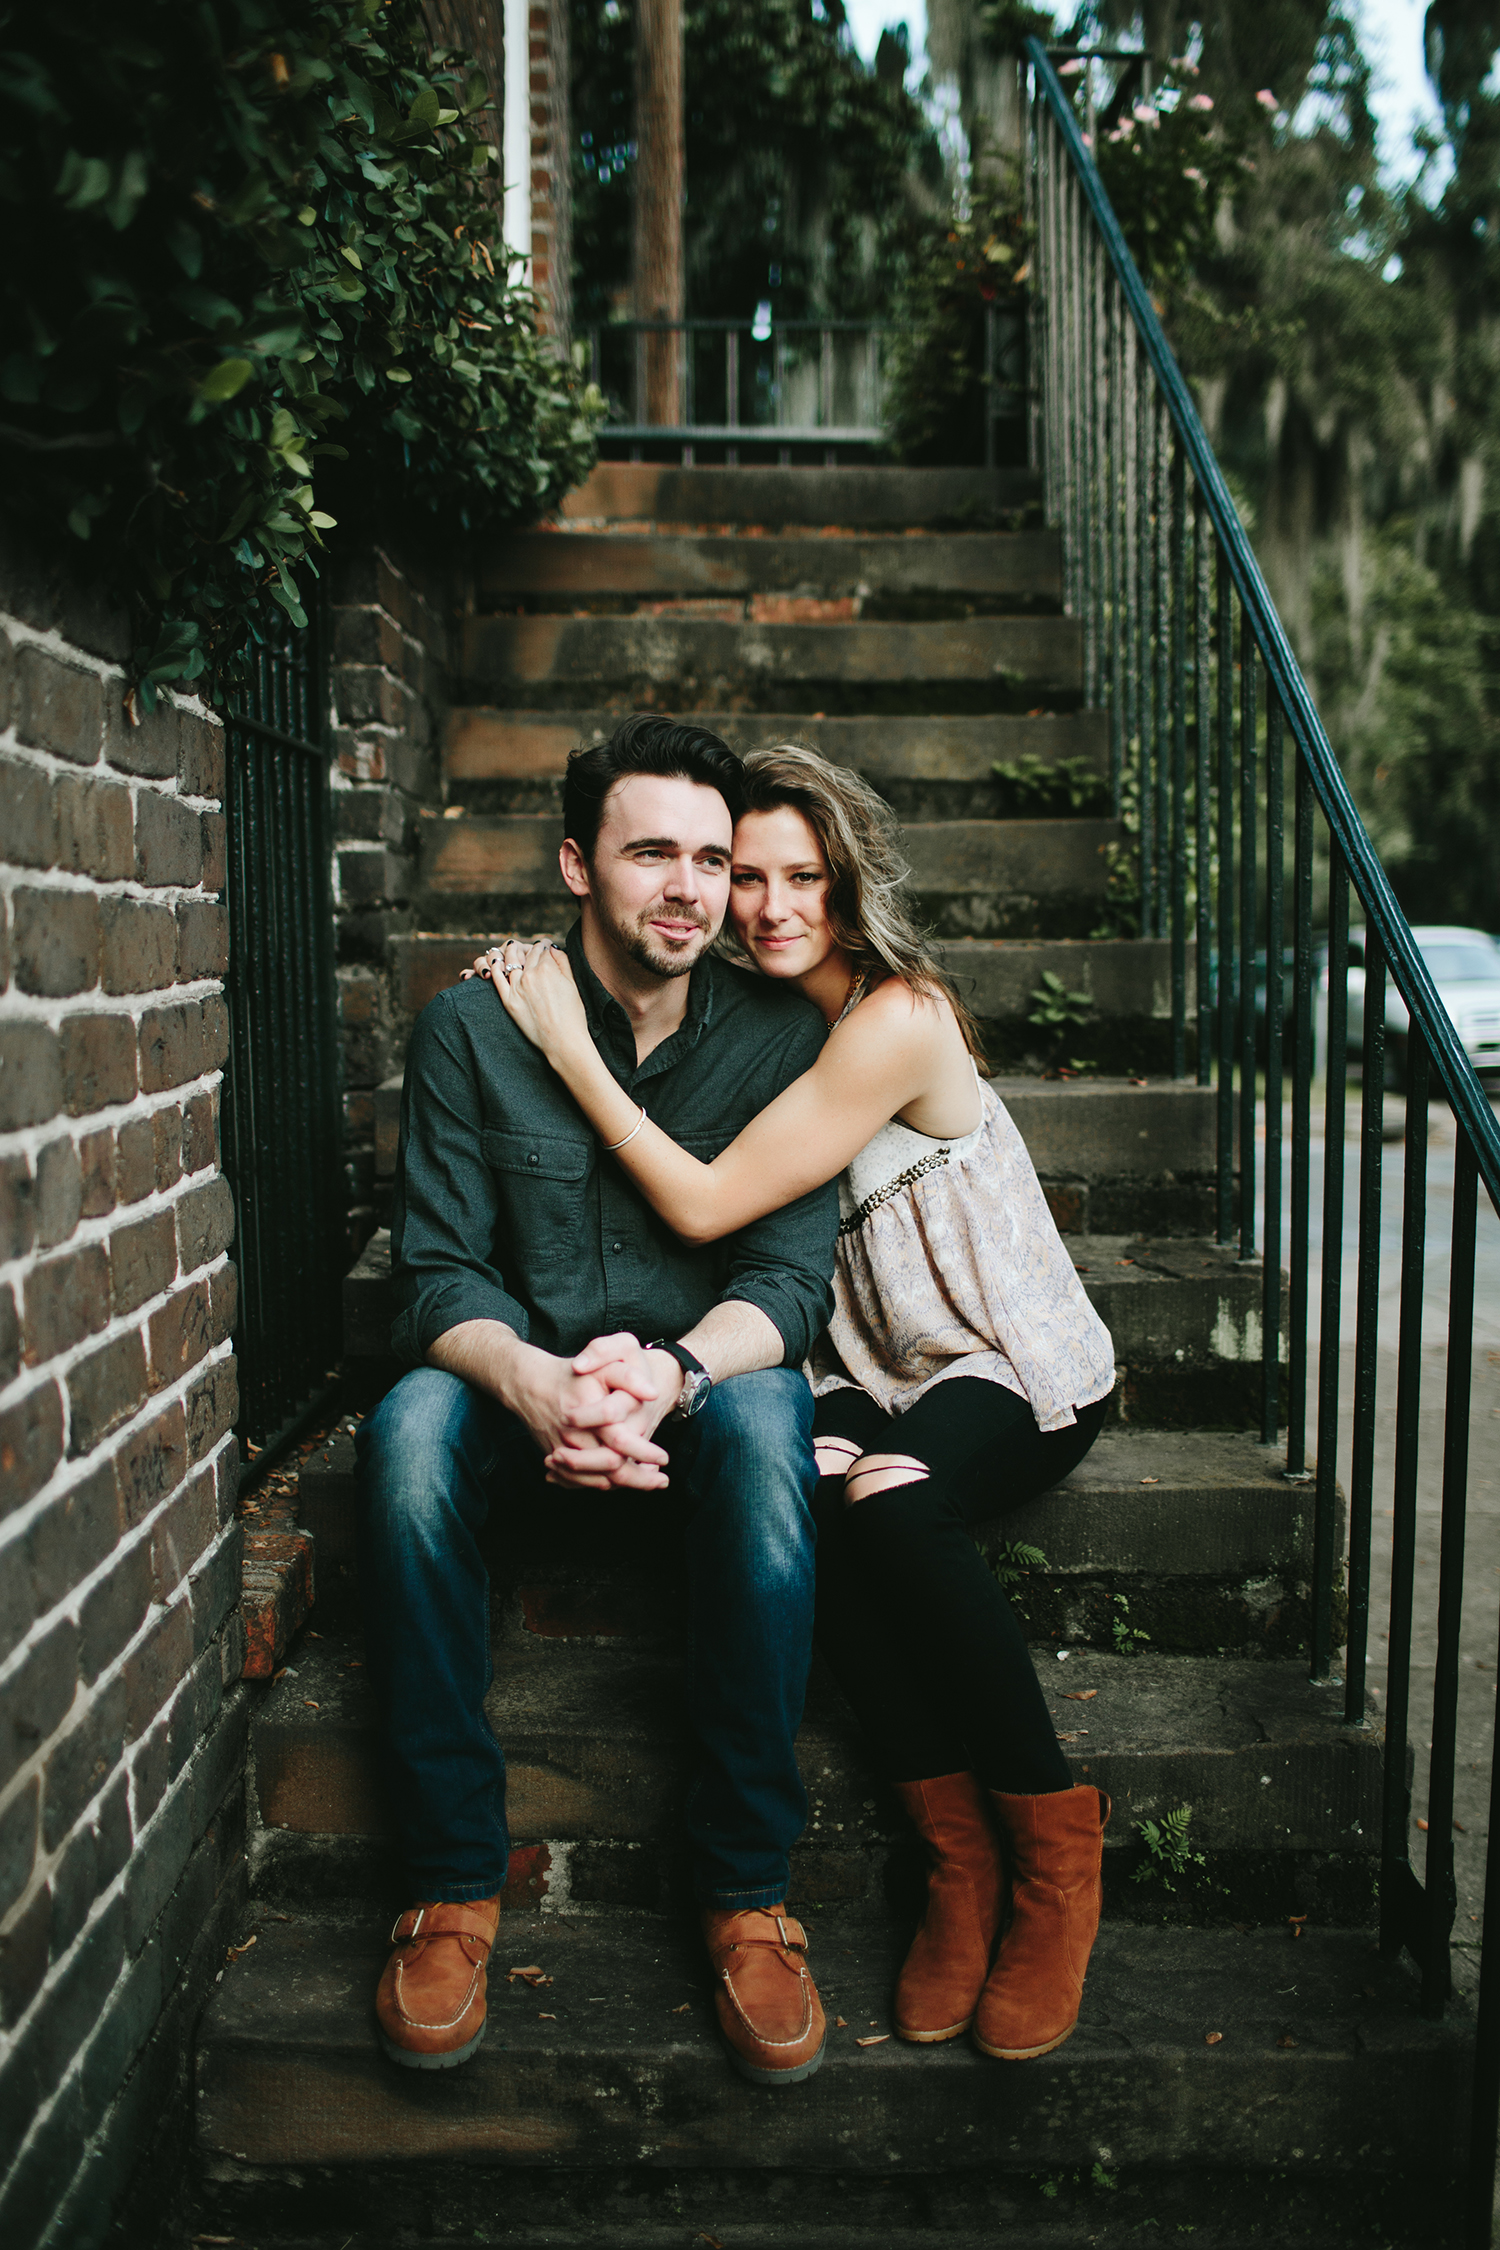 karliwillengaged - alicia white photography-163.jpg